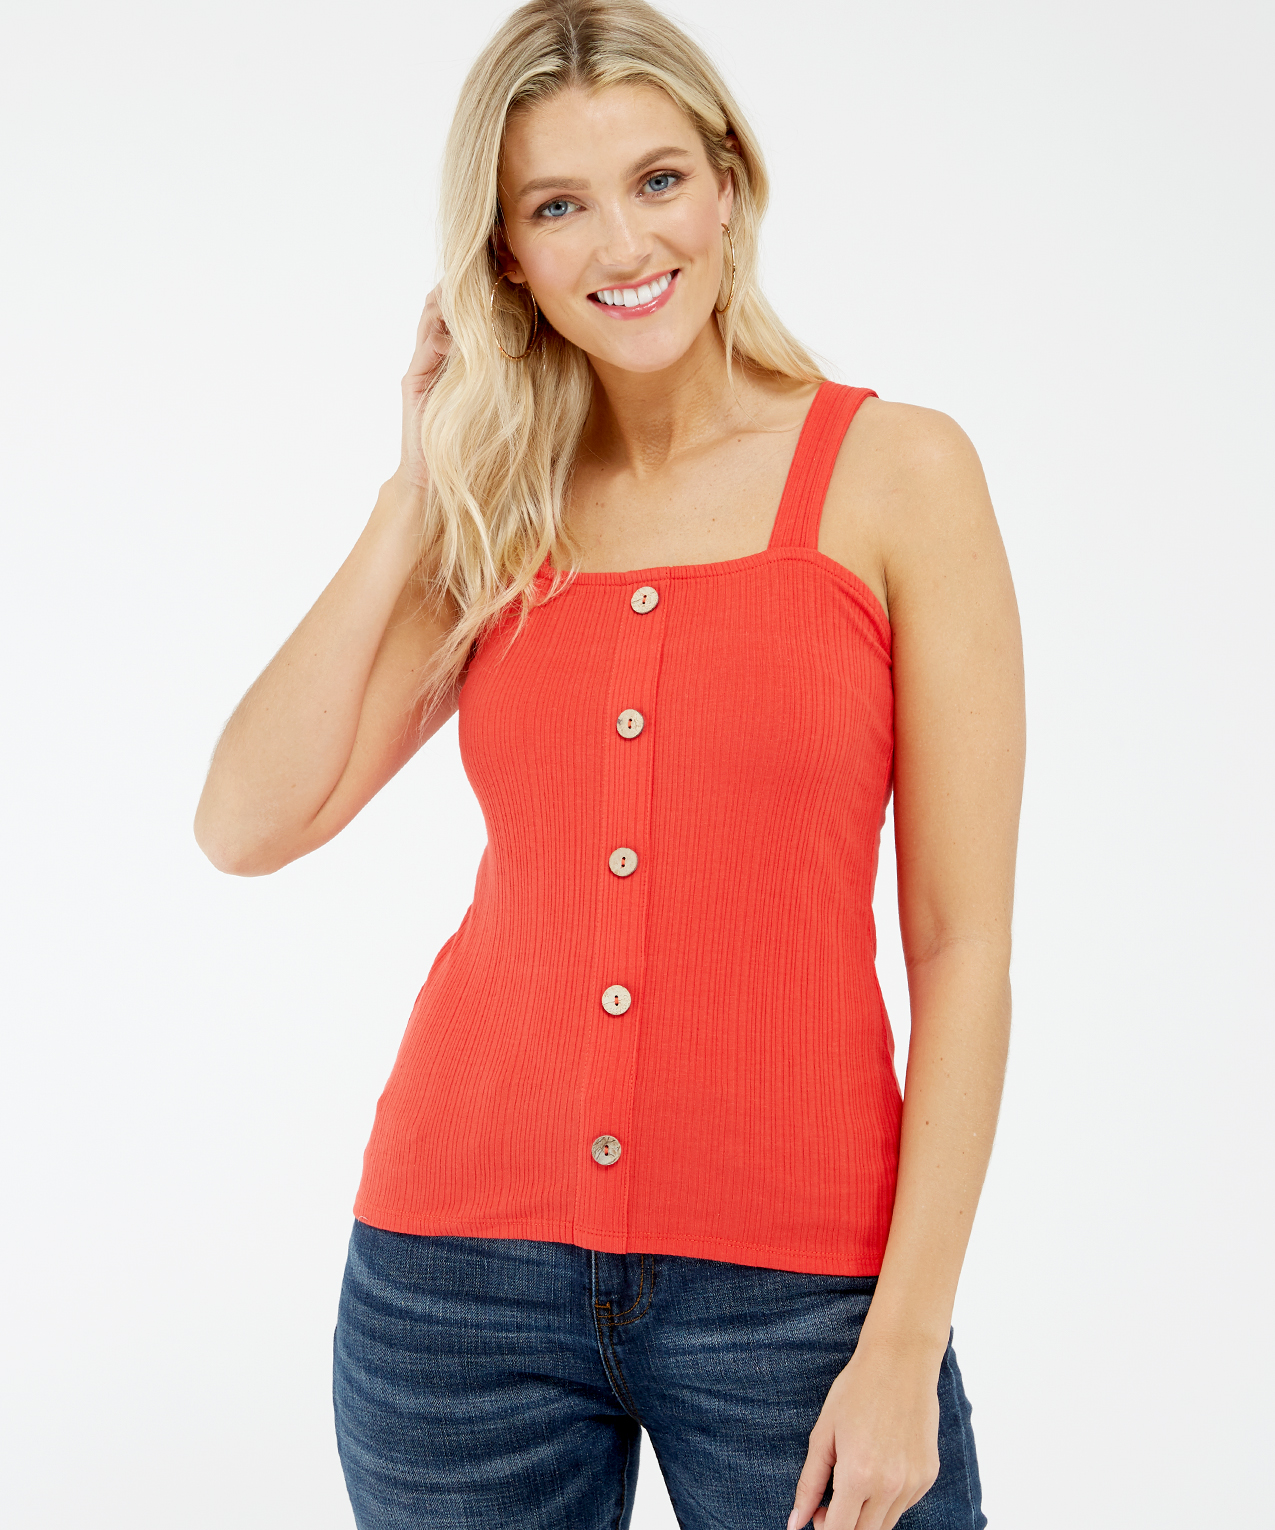 button front tank - wb, Orange, hi-res